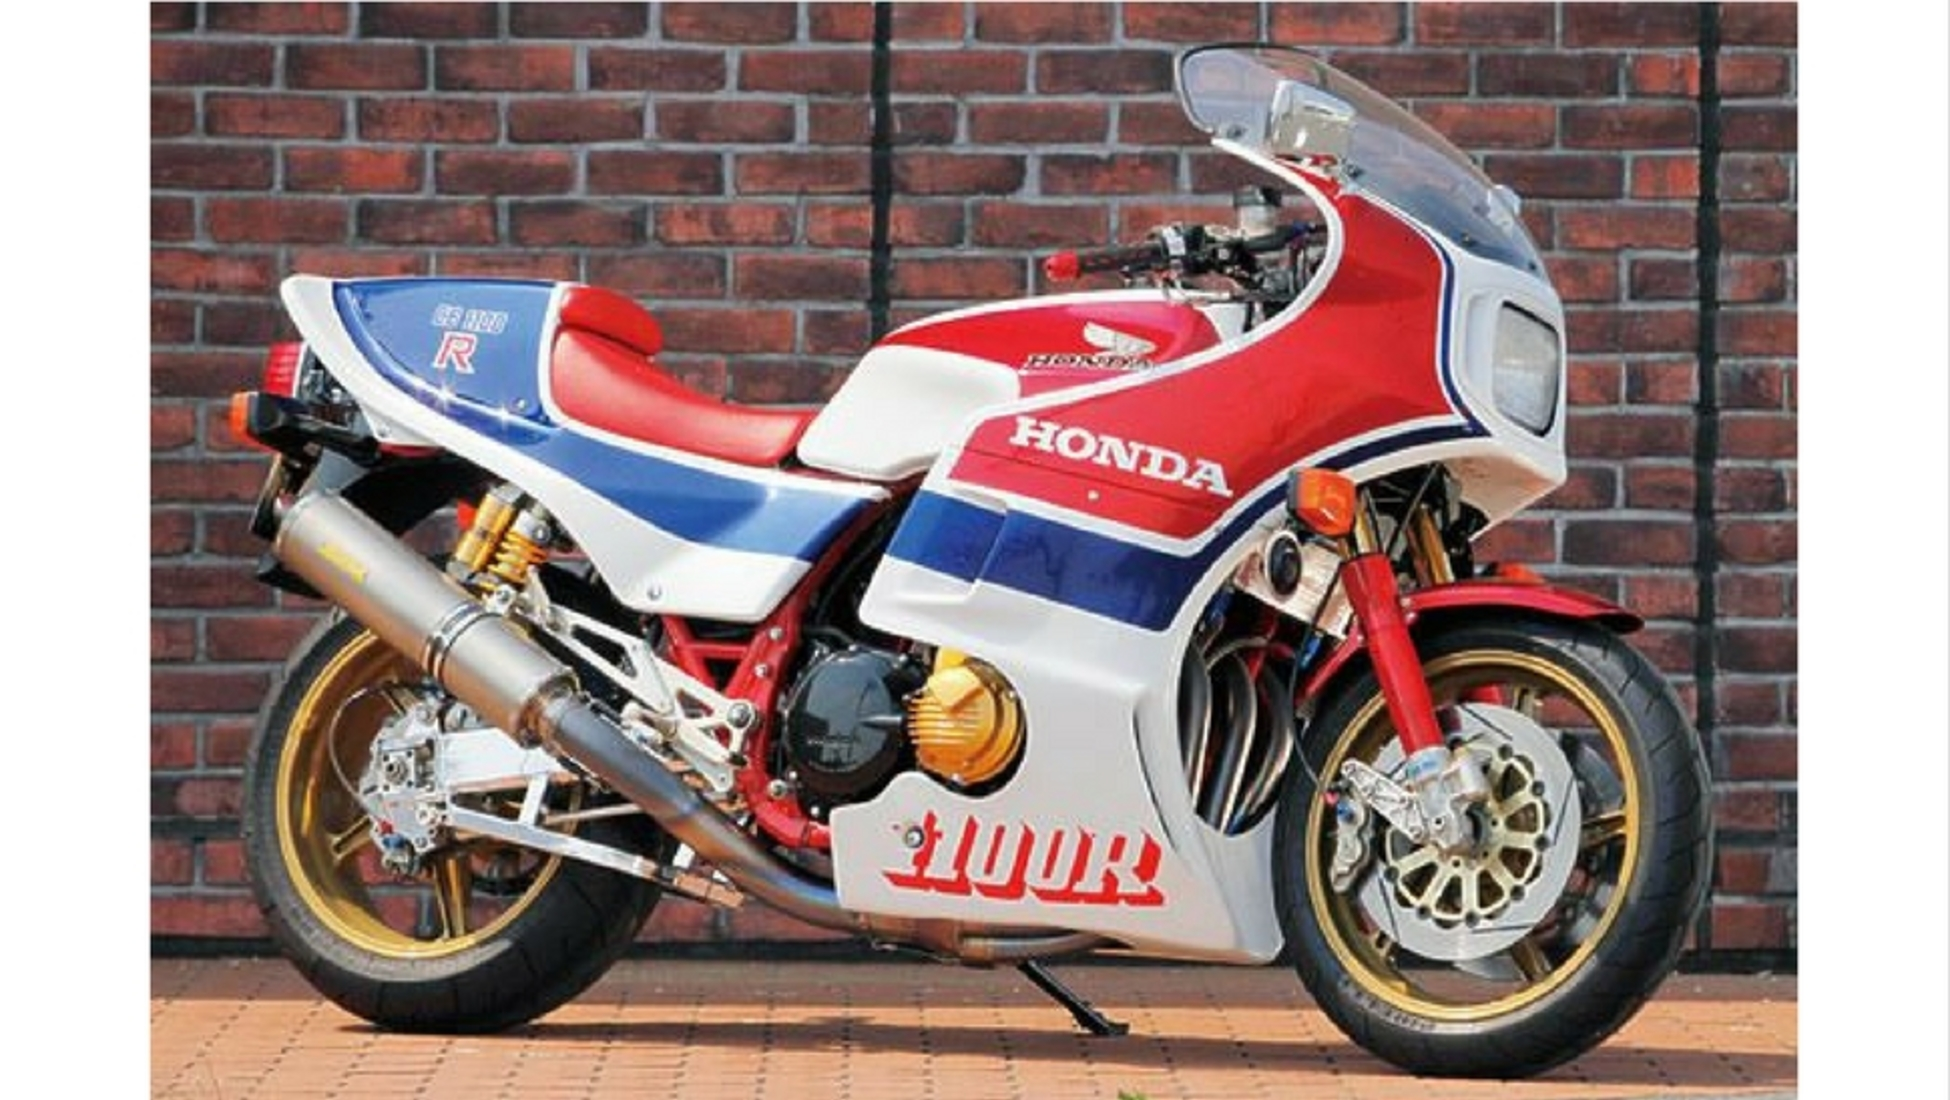 9 Soon To Be Classic Motorcycles Our Experts Advise To Invest In